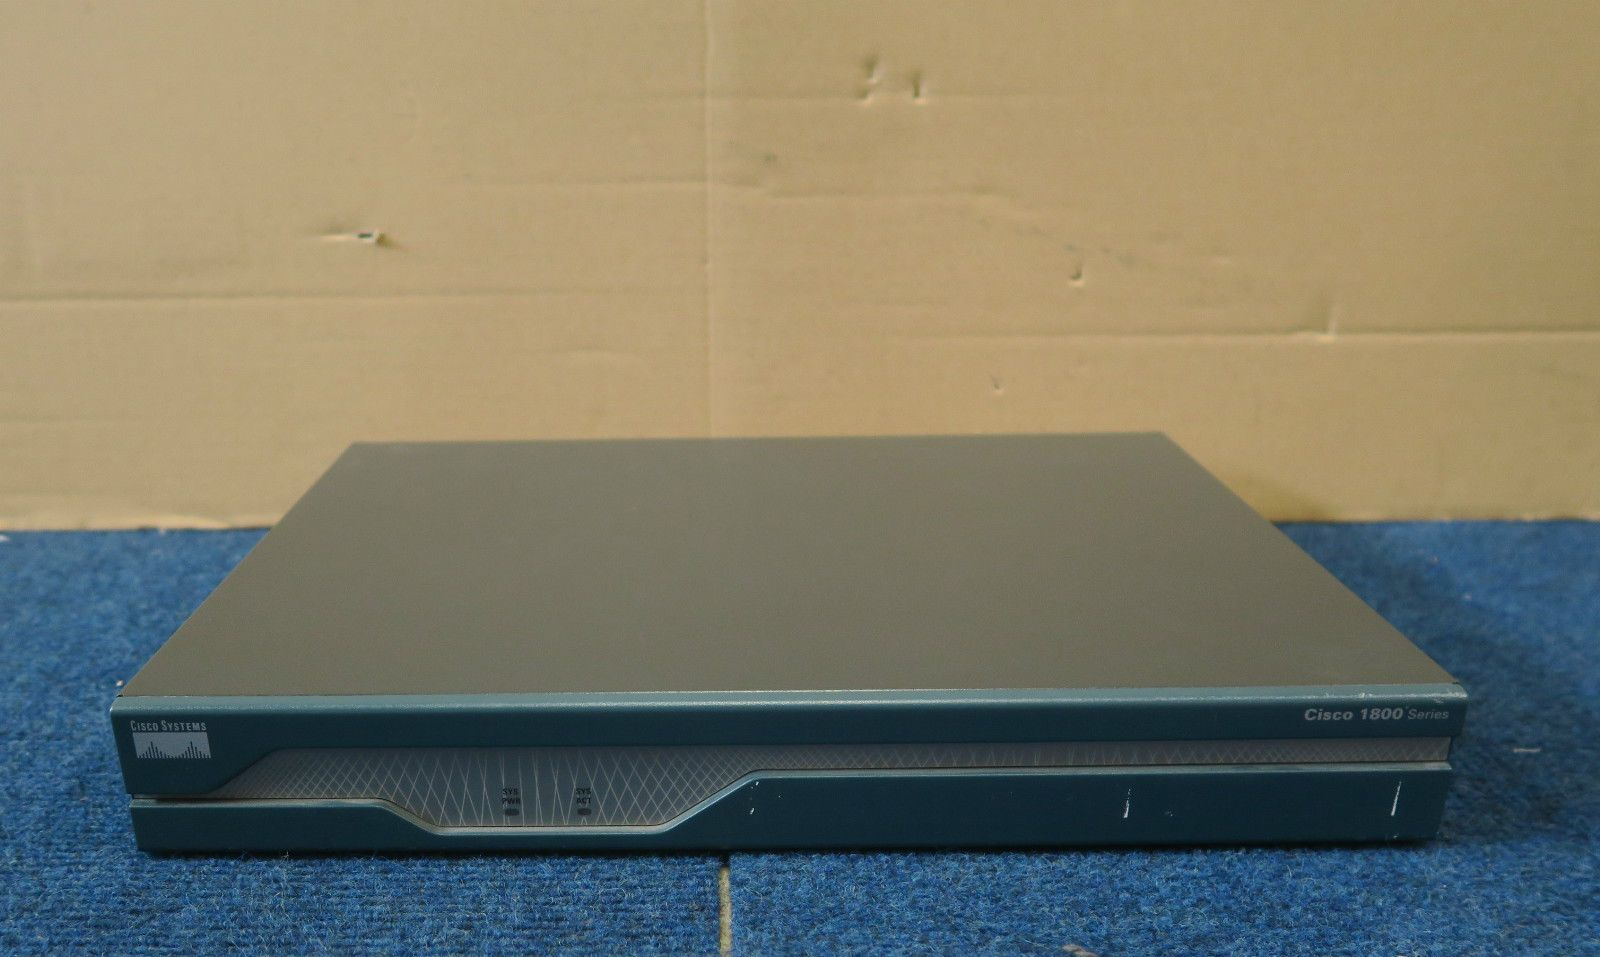 Cisco CISCO1841-SEC K9 - Security Wired Router With 1 x WIC1ADSL ...